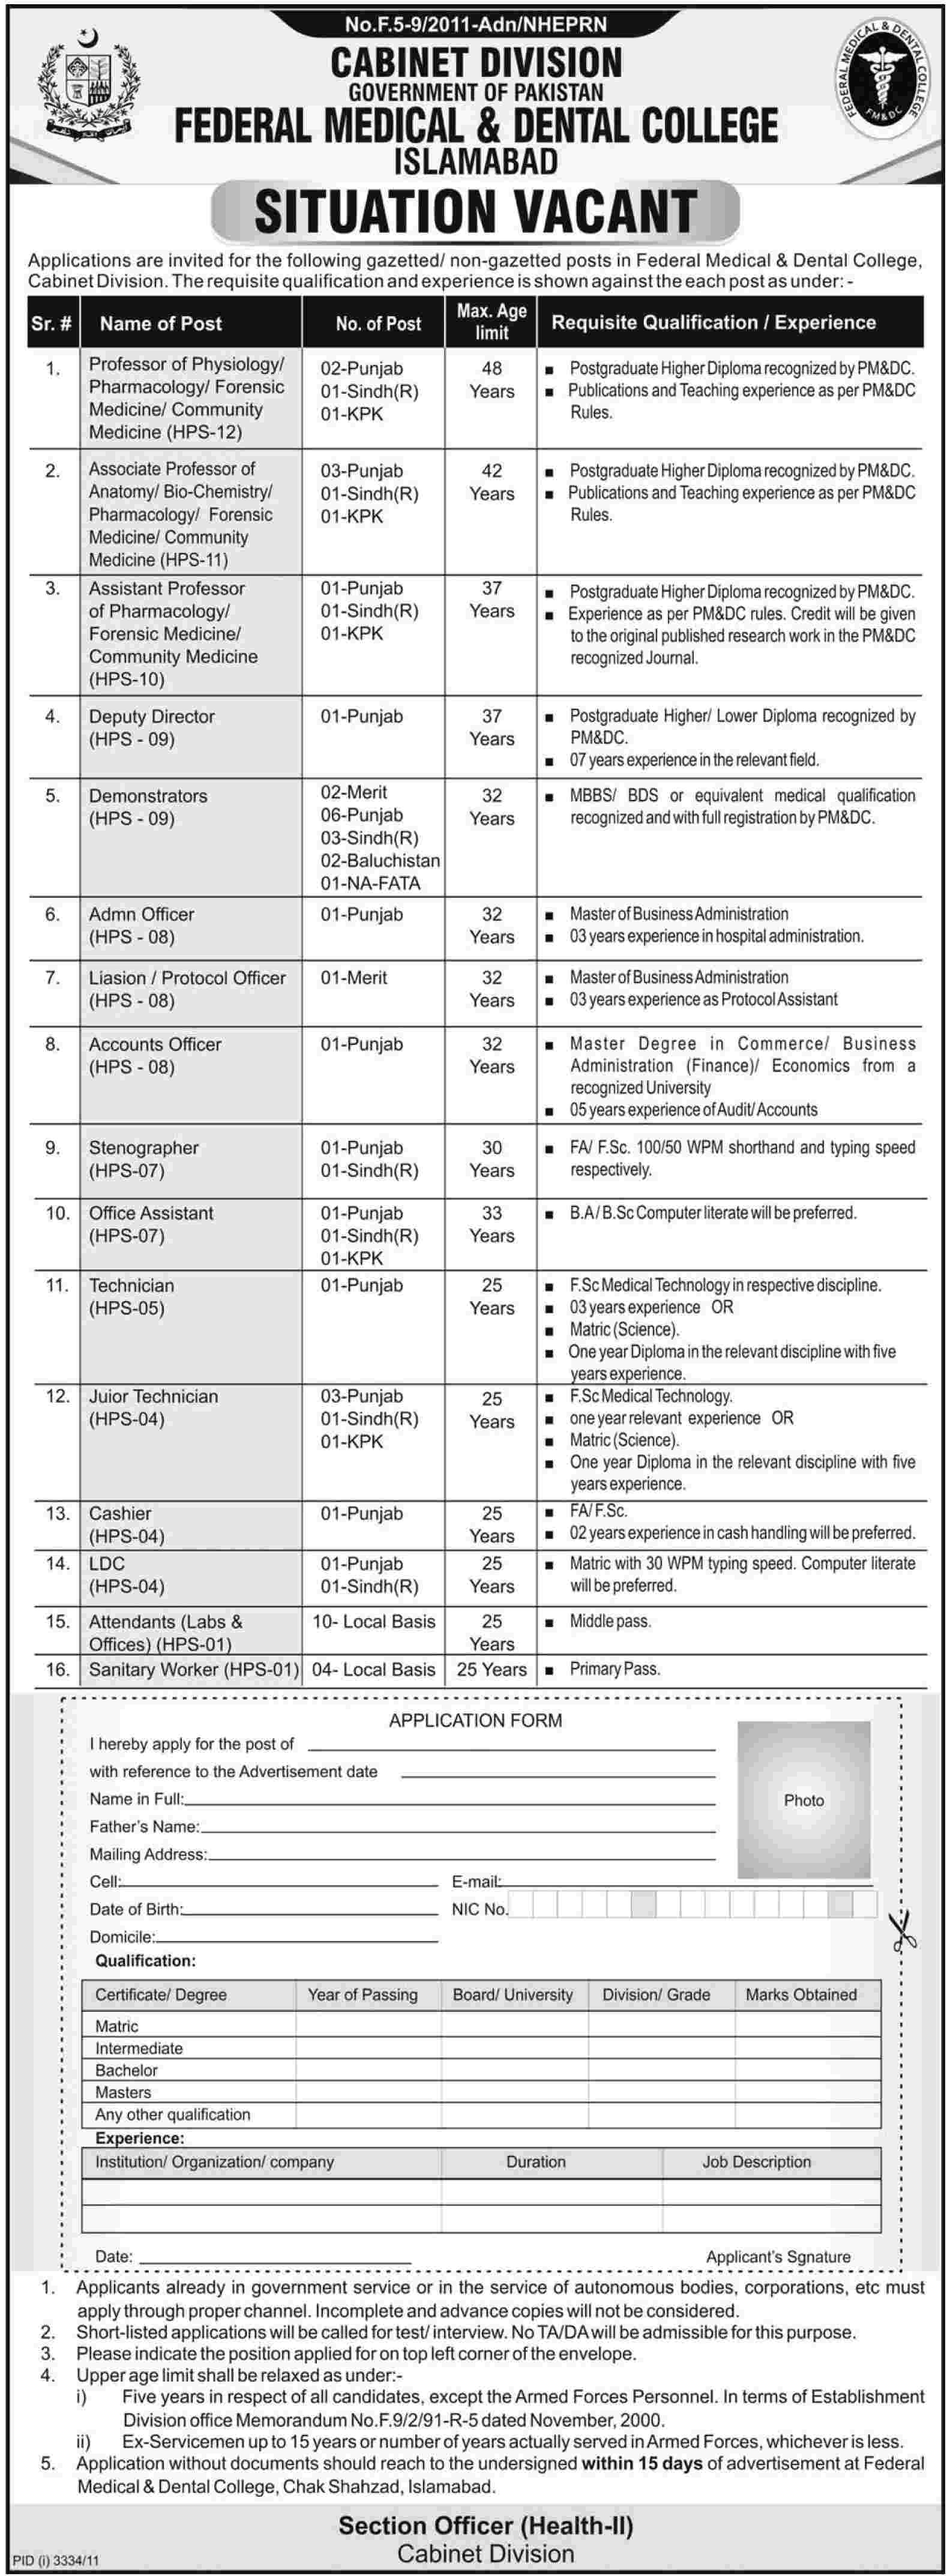 Federal Medical & Dental College Islamabad Jobs Opportunity